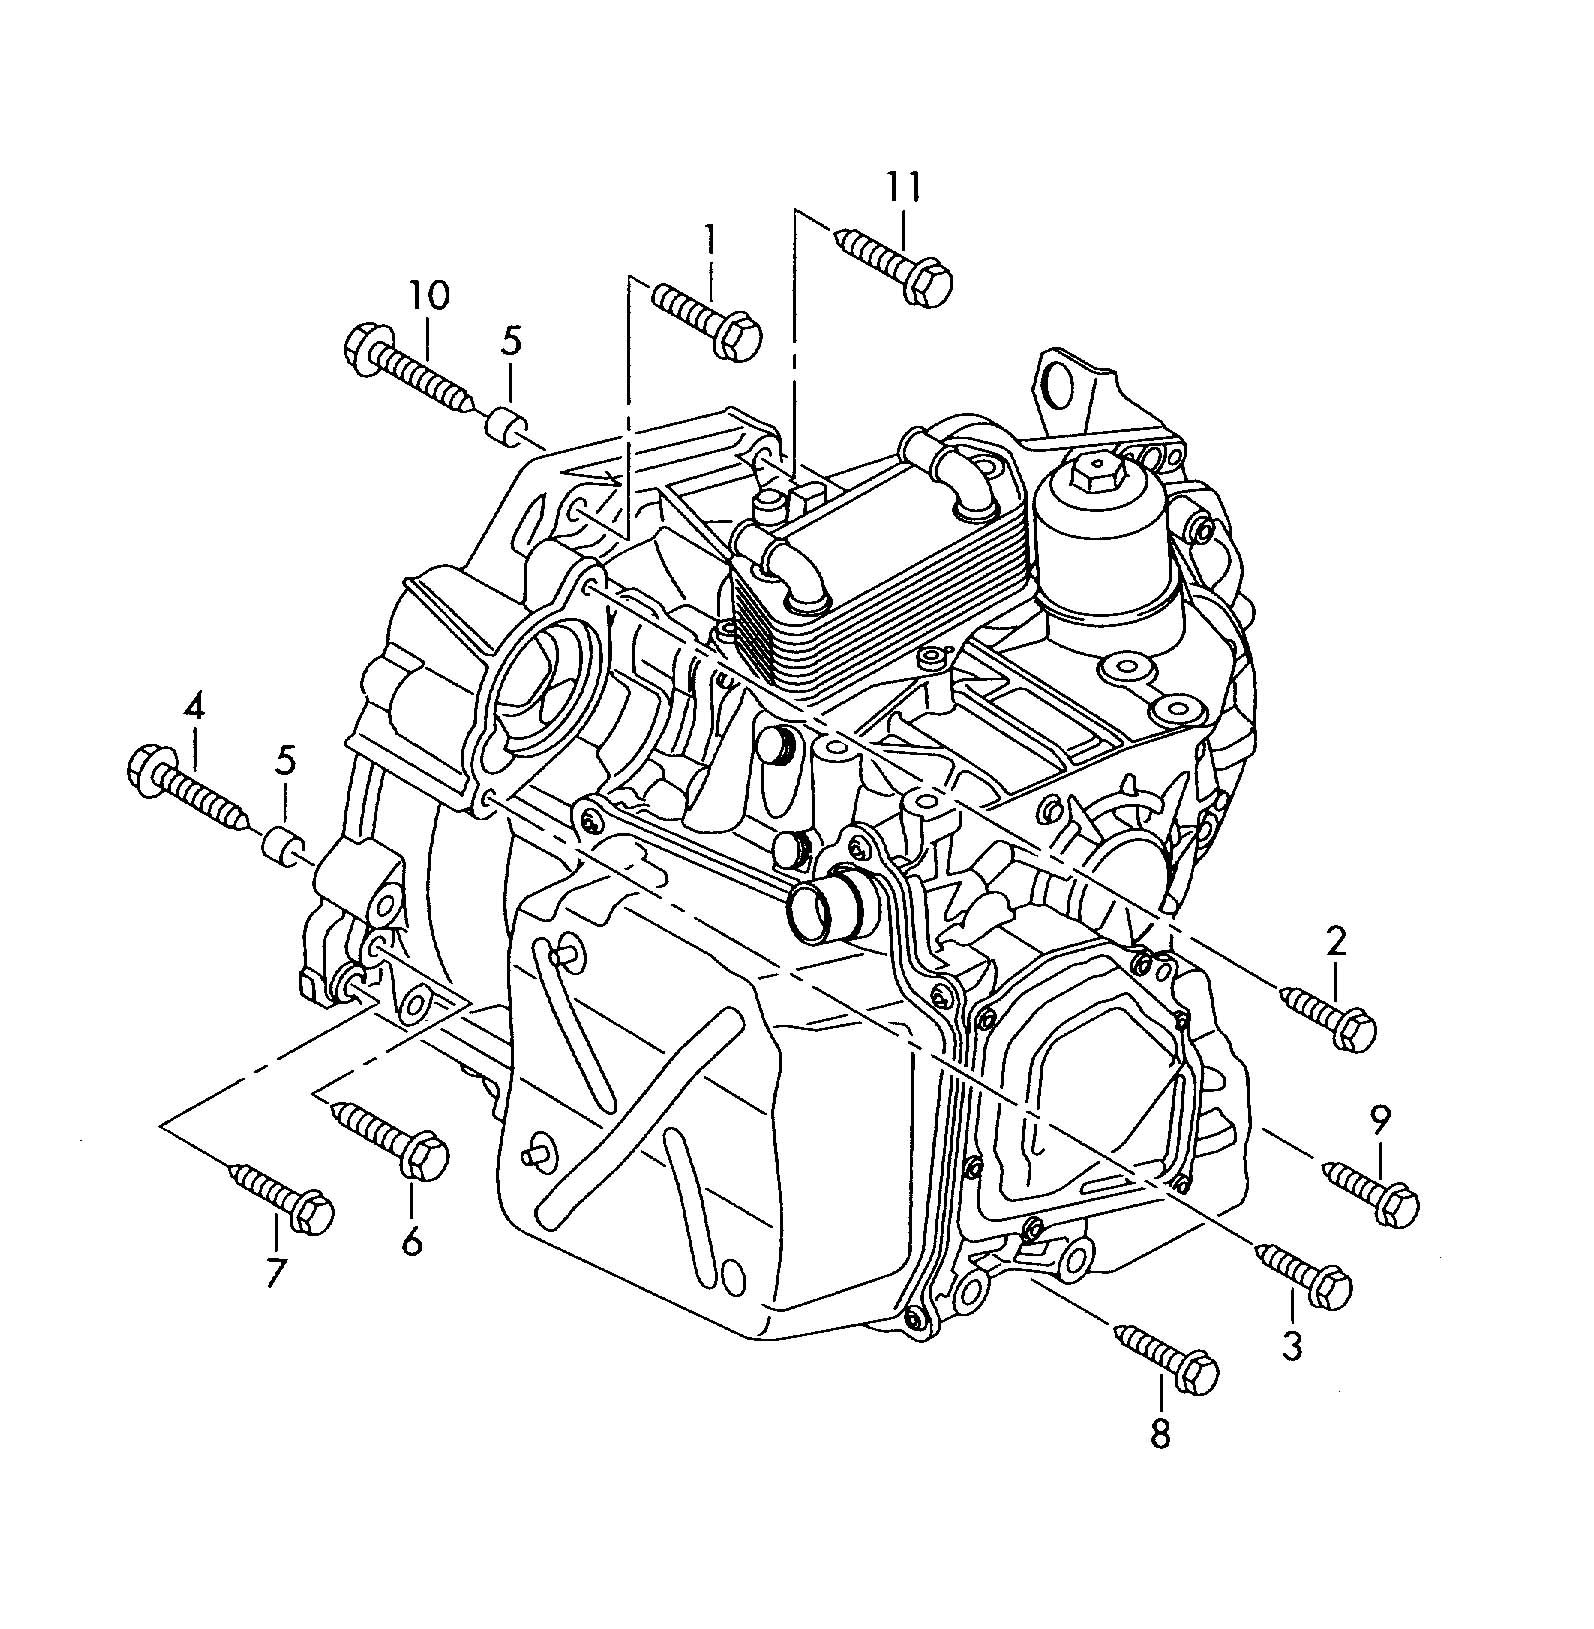 Volkswagen R32 Mounting Parts For Engine And Transmission